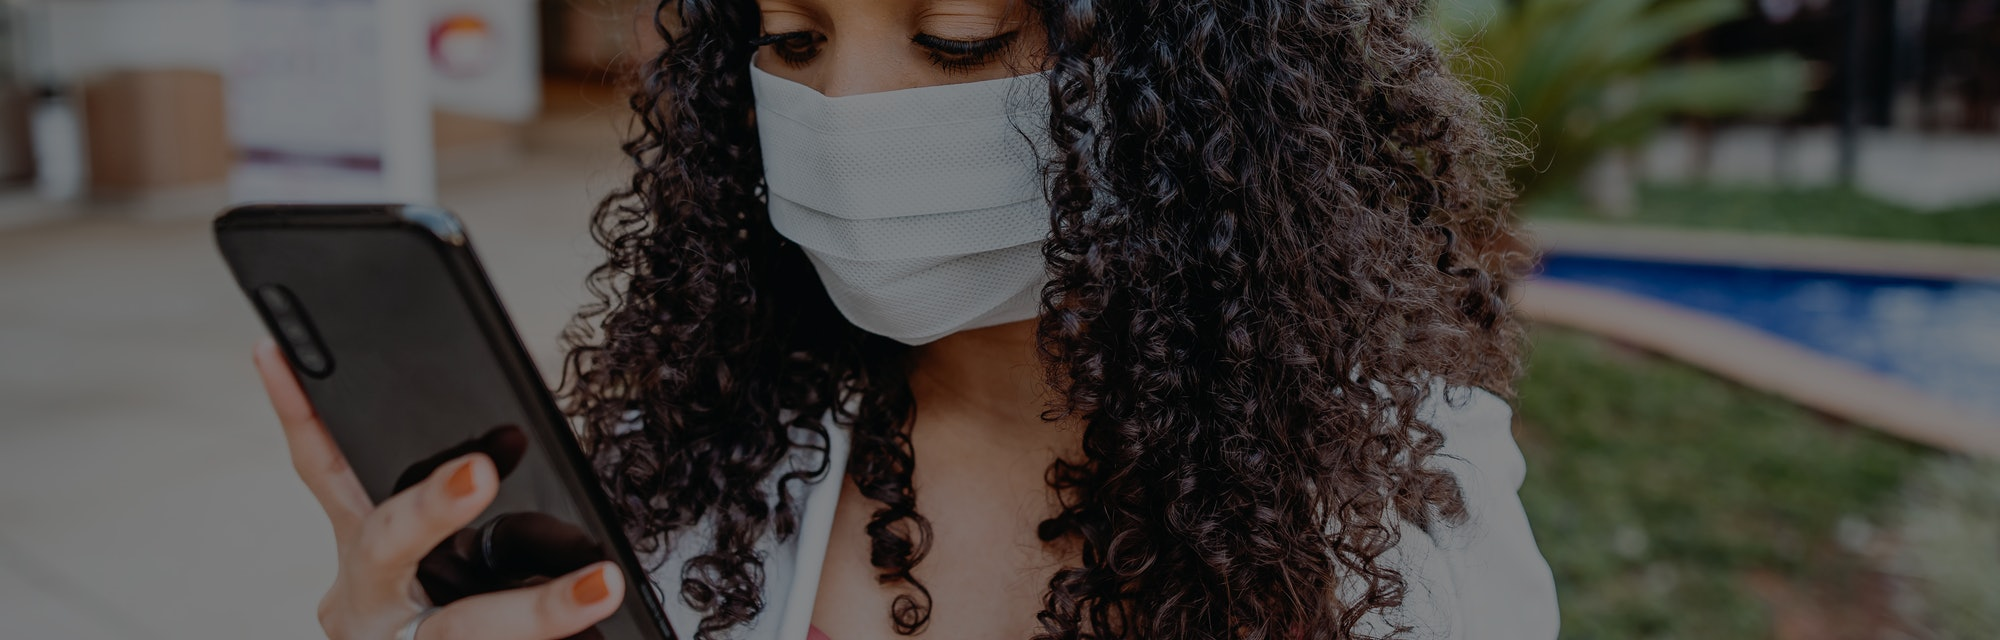 A woman with curly hair can be seen holding a smartphone while she wears a face mask in public.